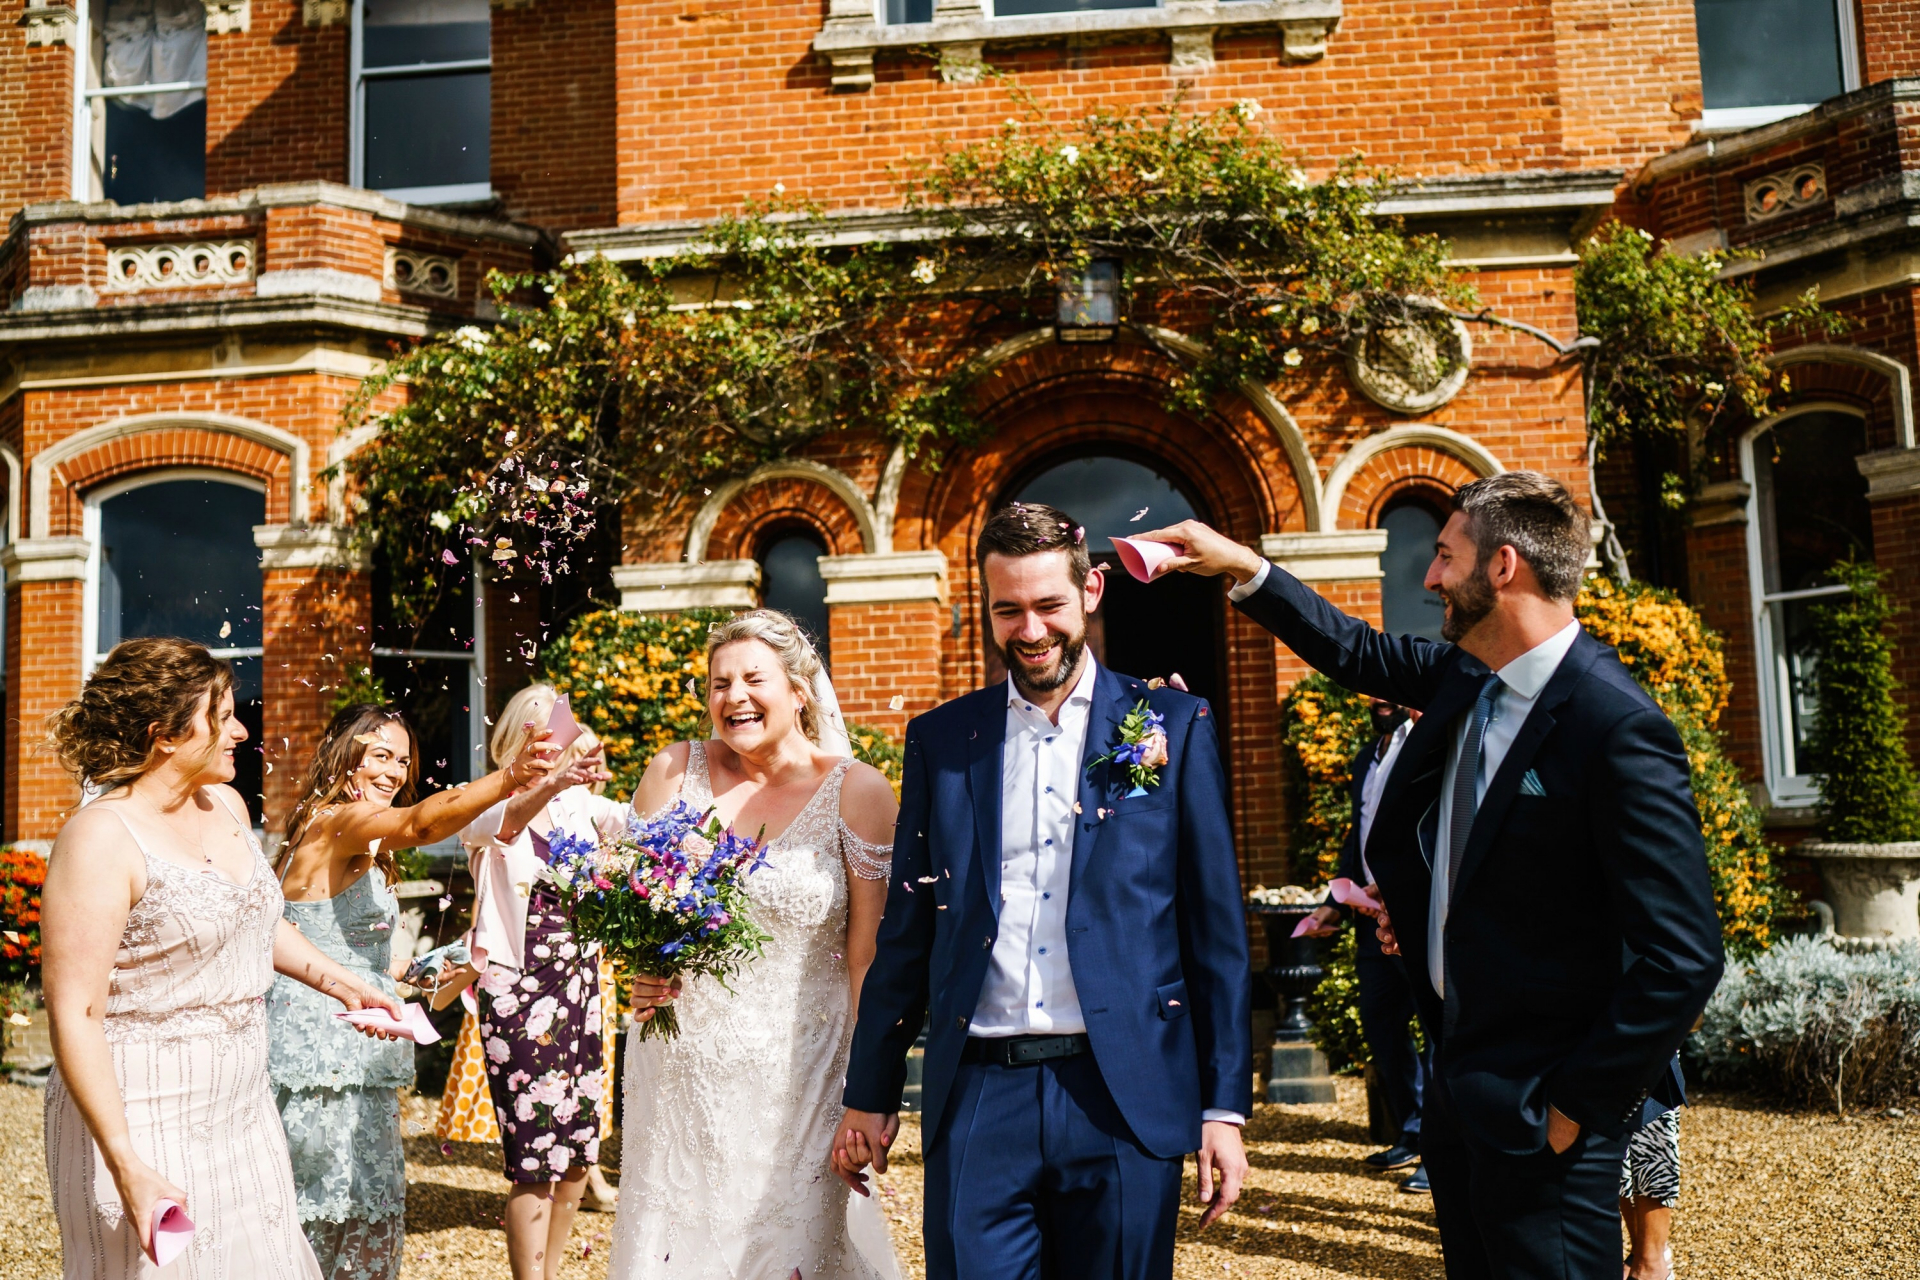 Gunthorpe Hall Wedding Venue - Norfolk Photos |  the bride and groom exit the hall into the bright outdoors